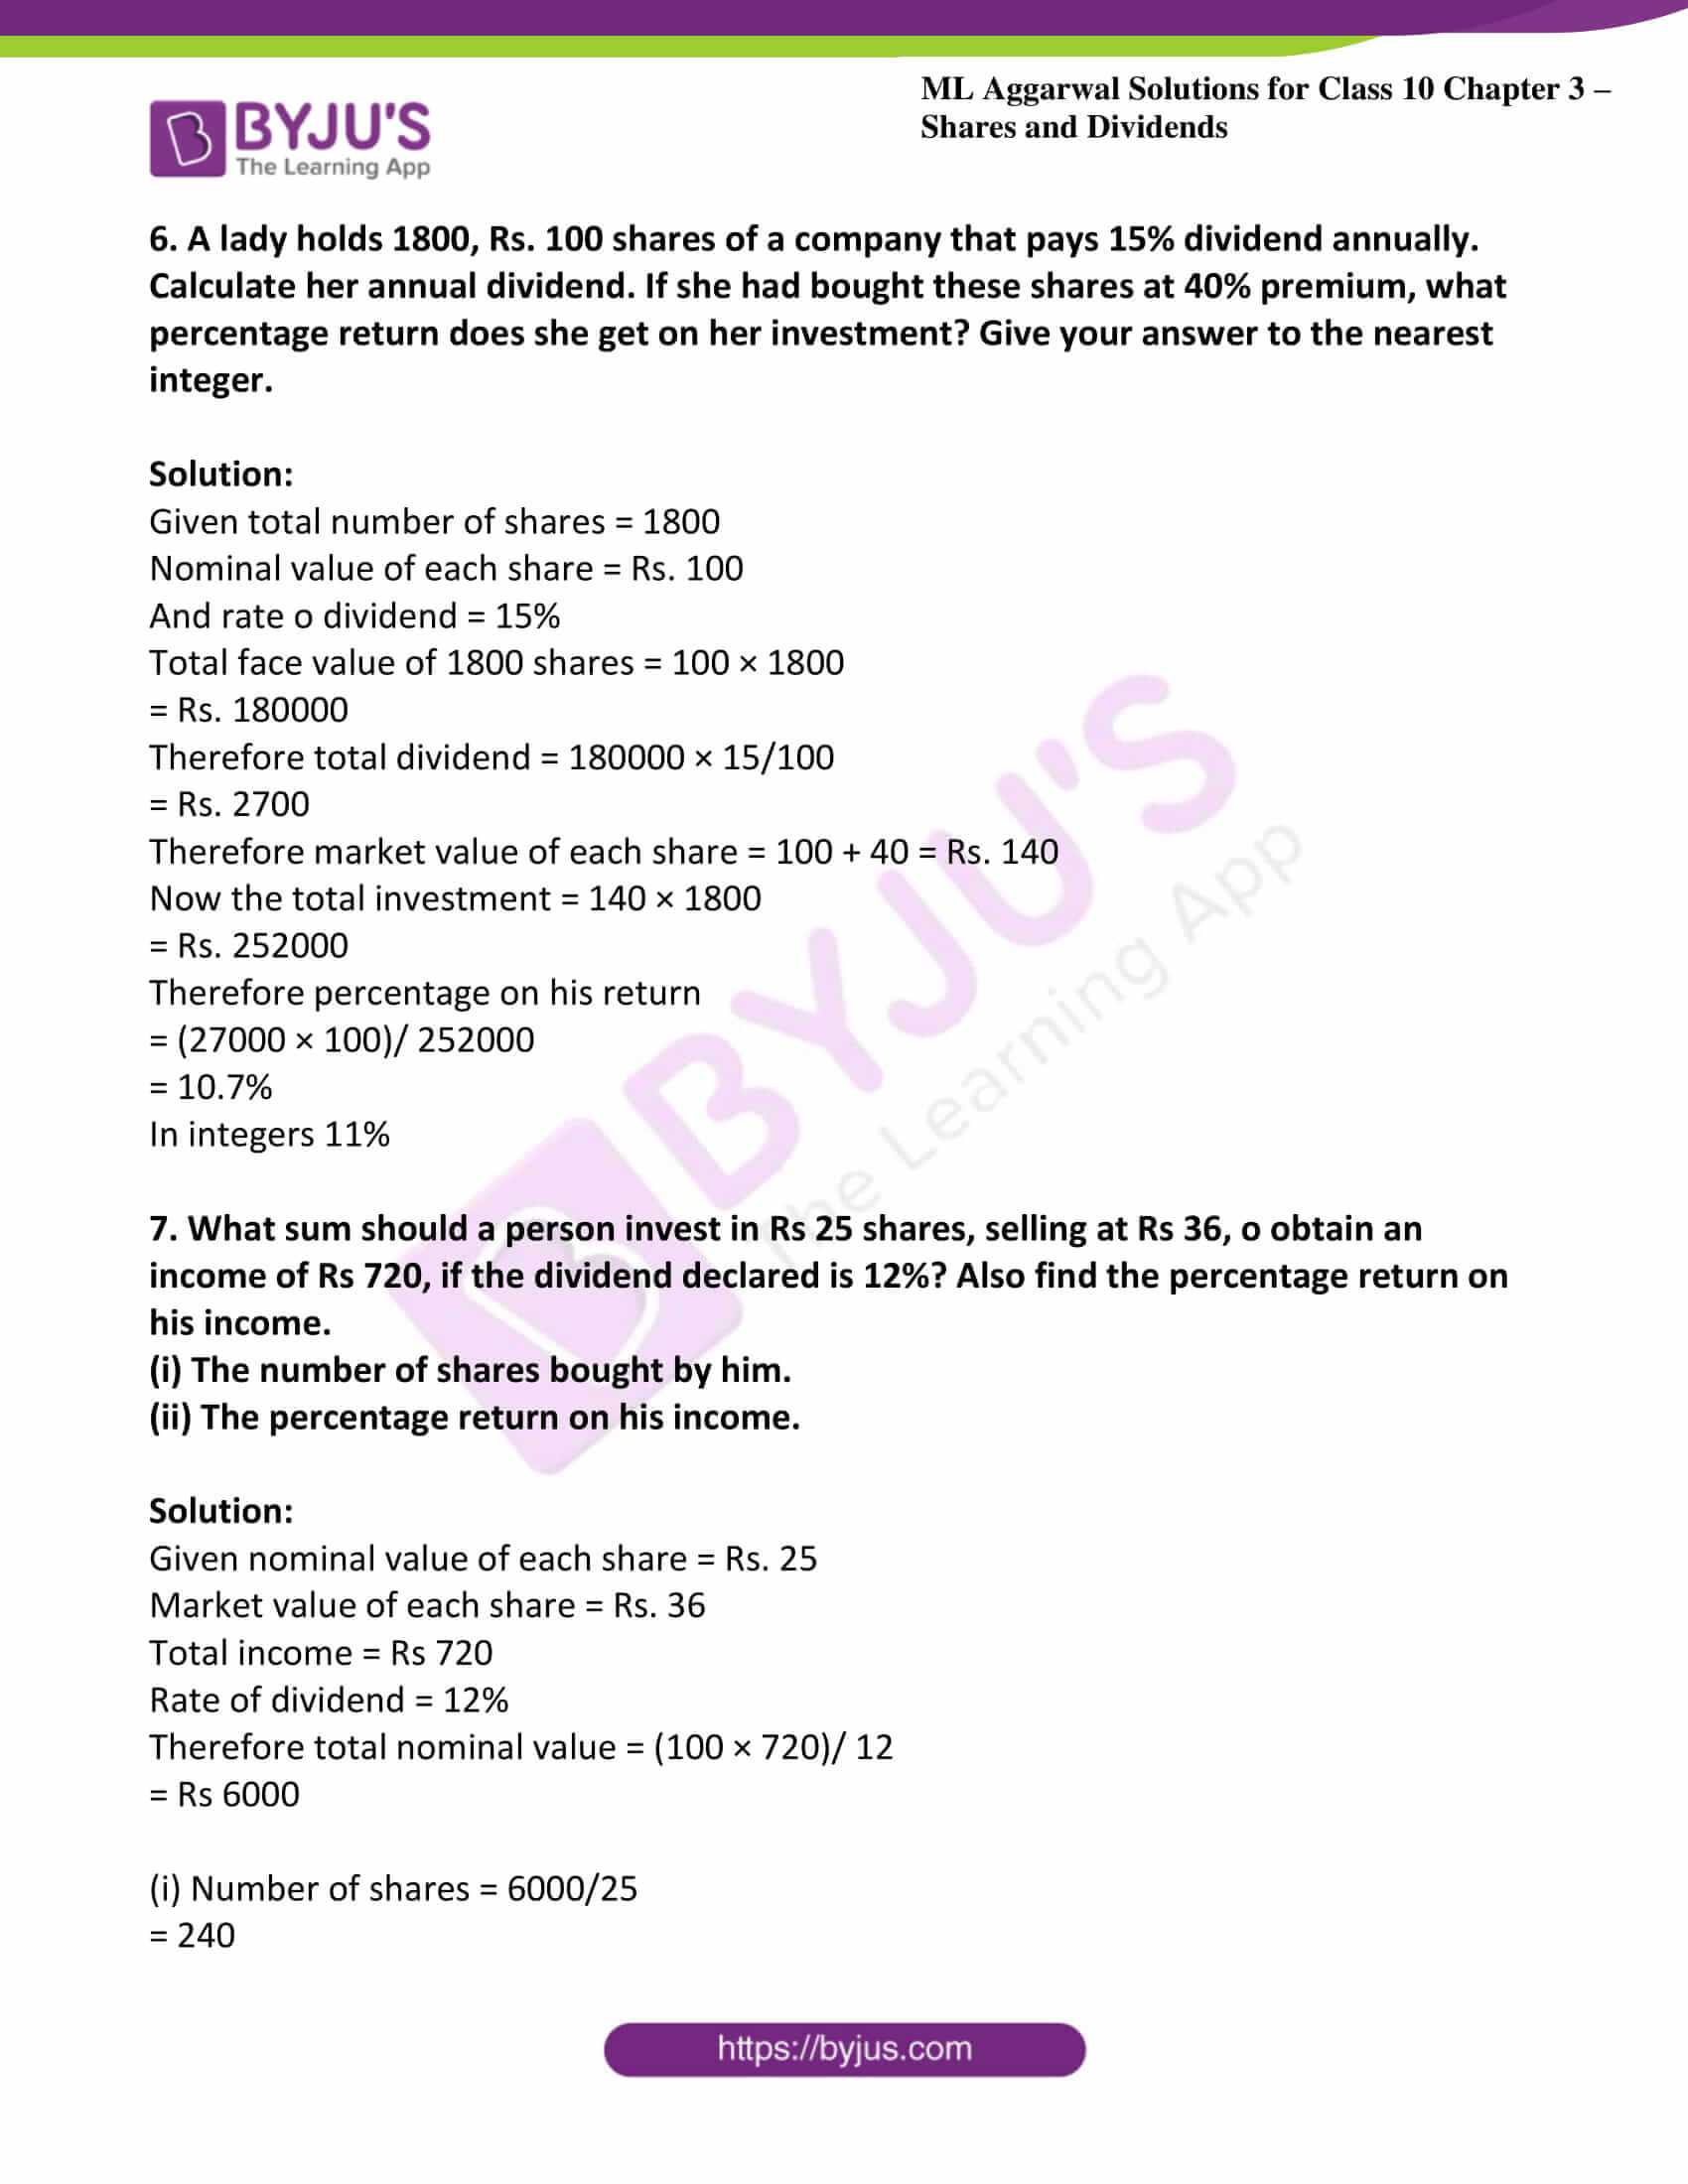 ml aggarwal solutions for class 10 maths chapter 3 03